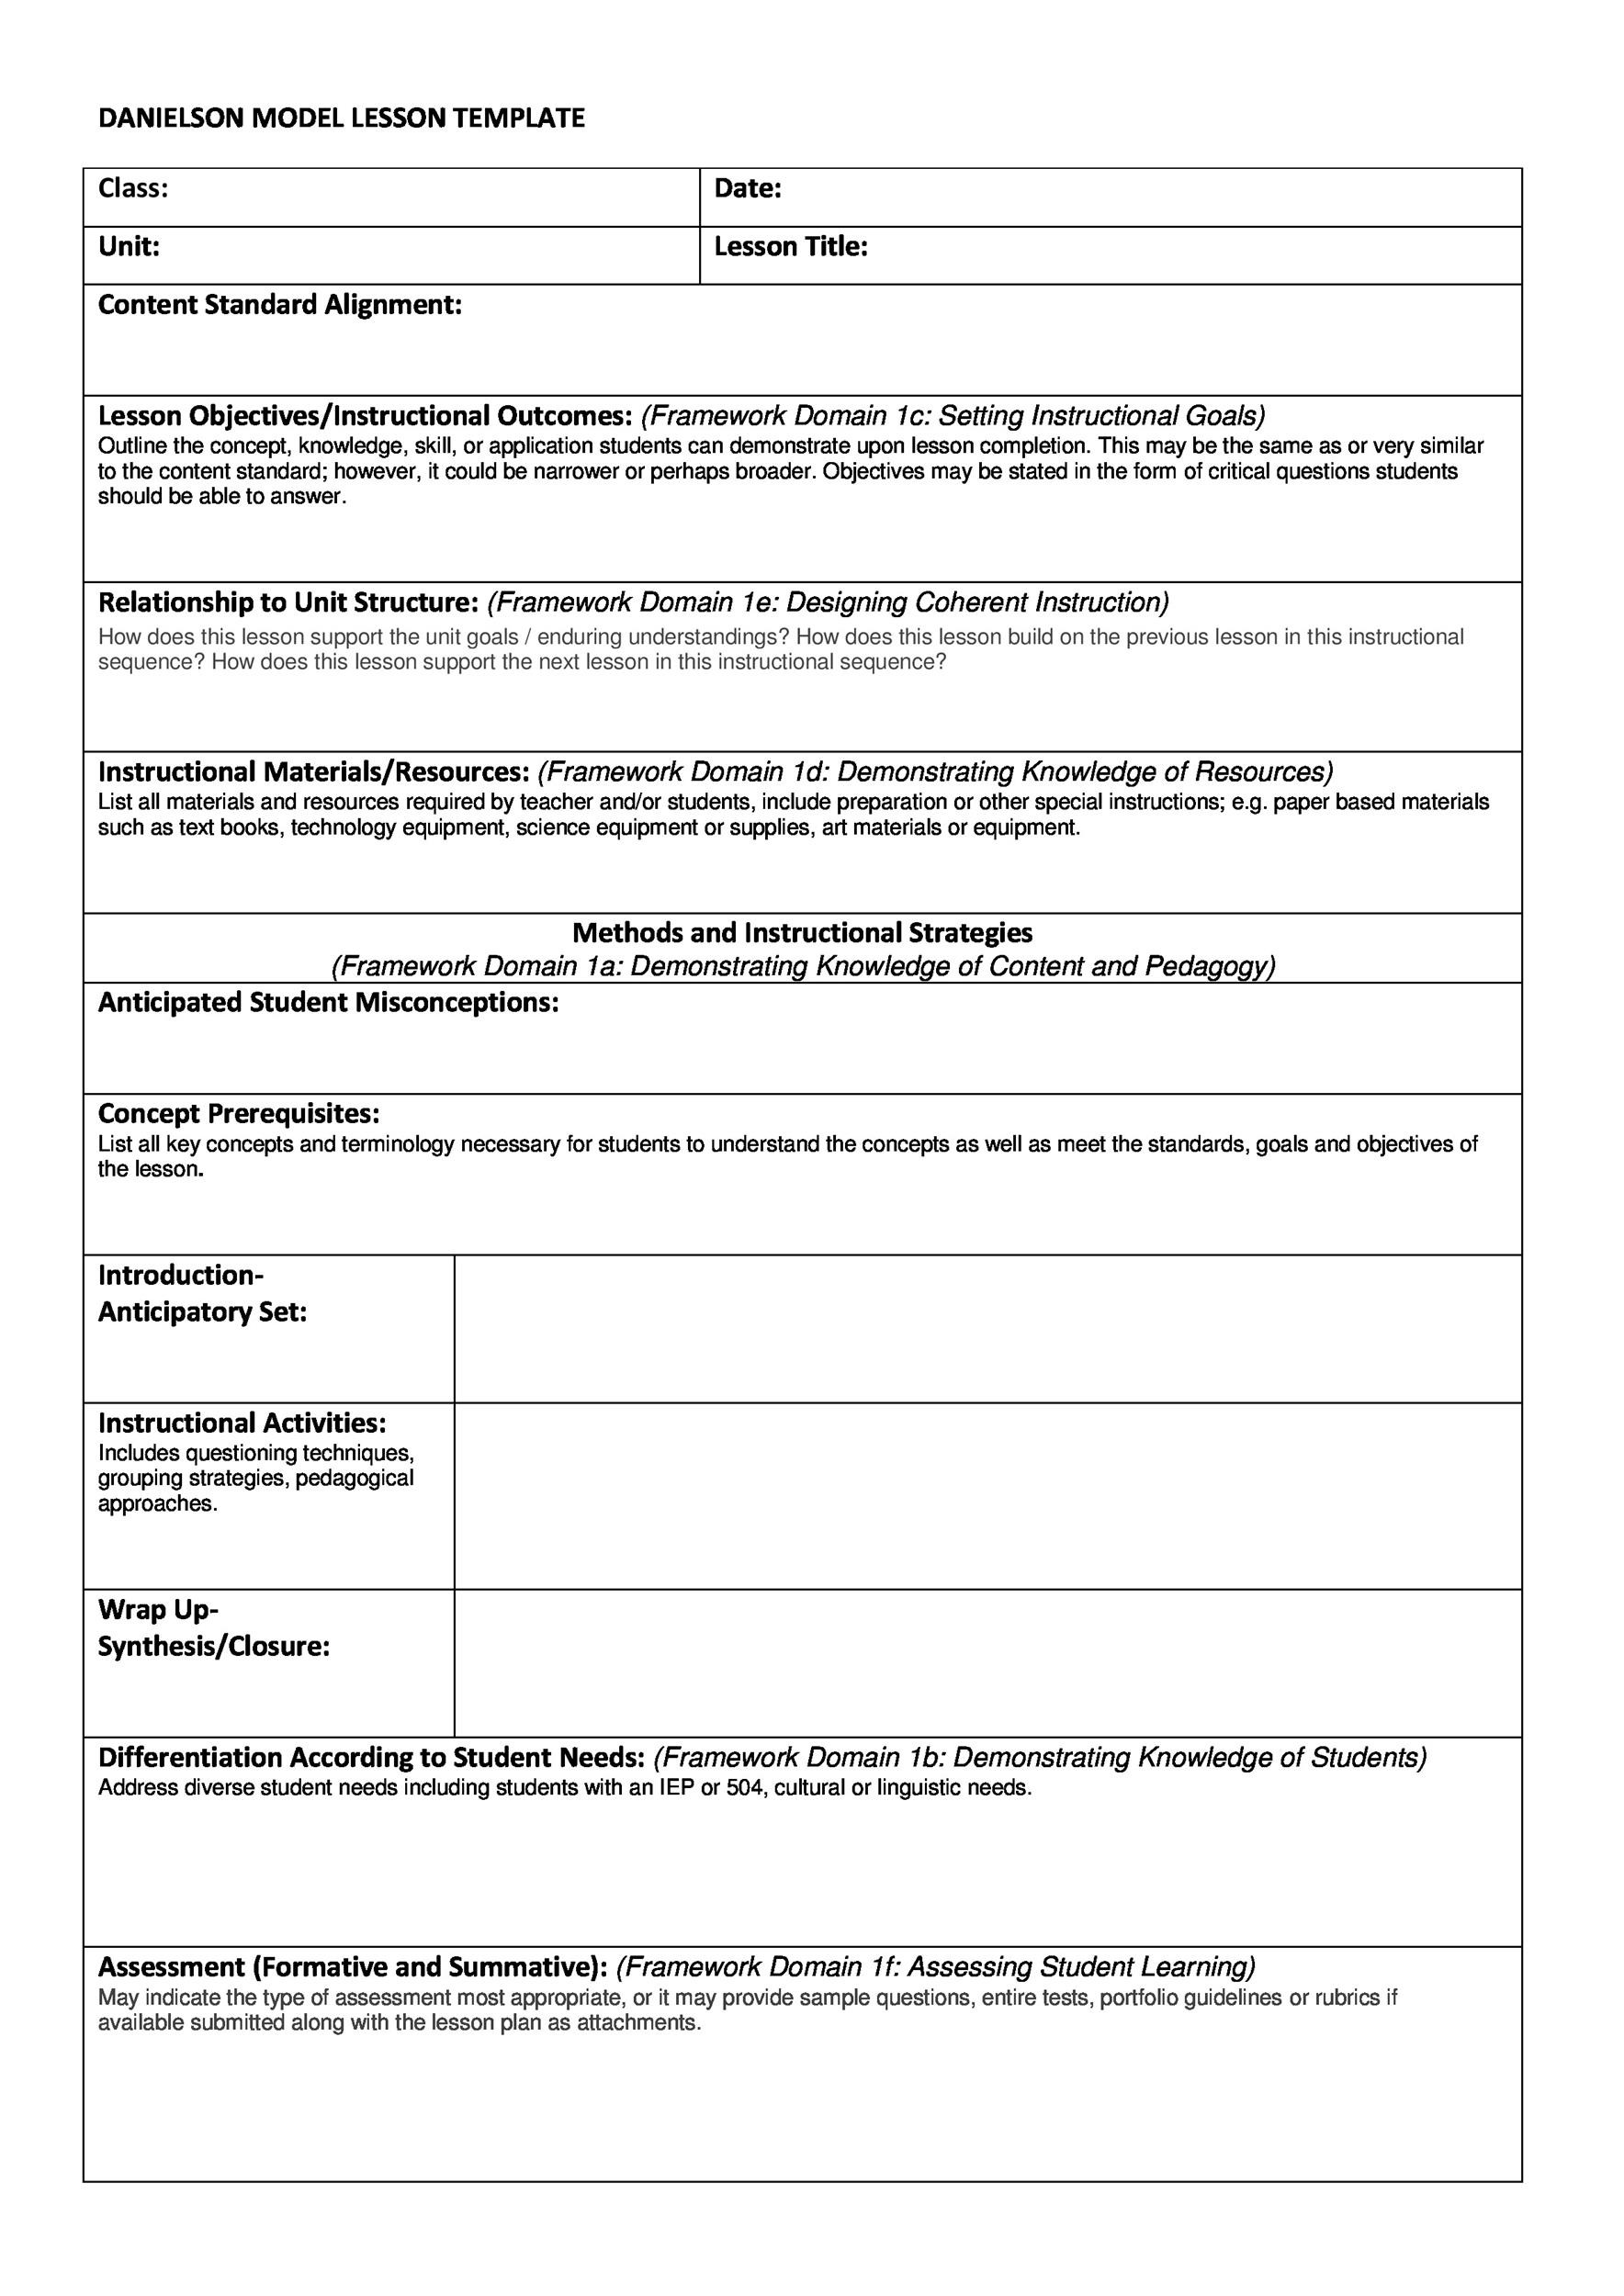 FREE Lesson Plan Templates Common Core Preschool Weekly - Lesson plan template for preschool teachers